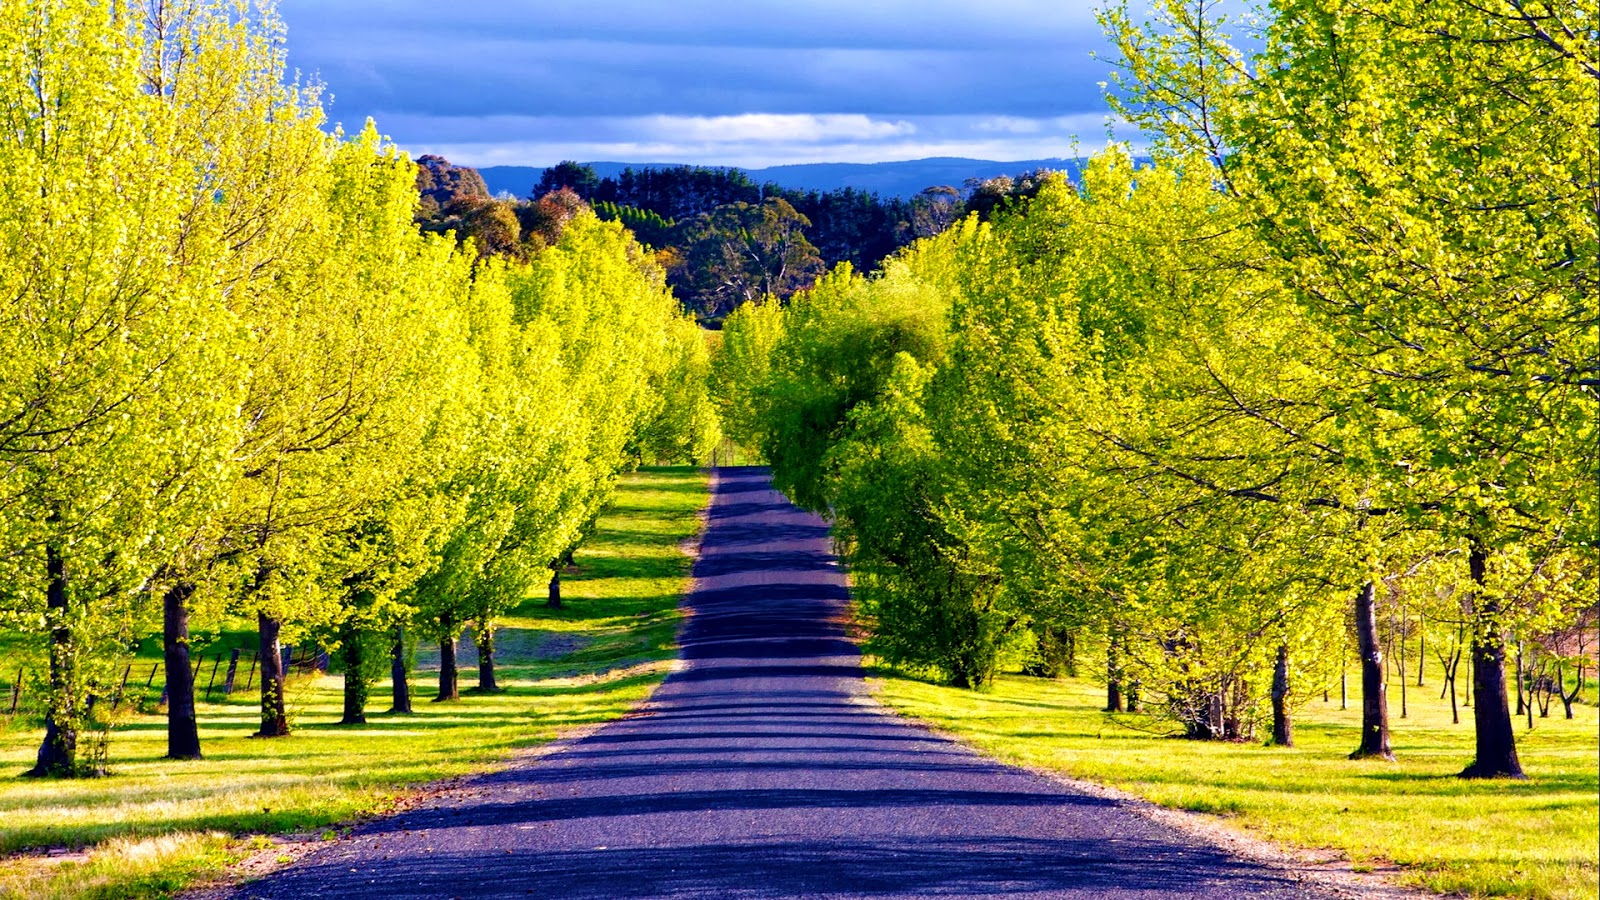 Pathway Wallpapers Most beautiful places in the world Download 1600x900